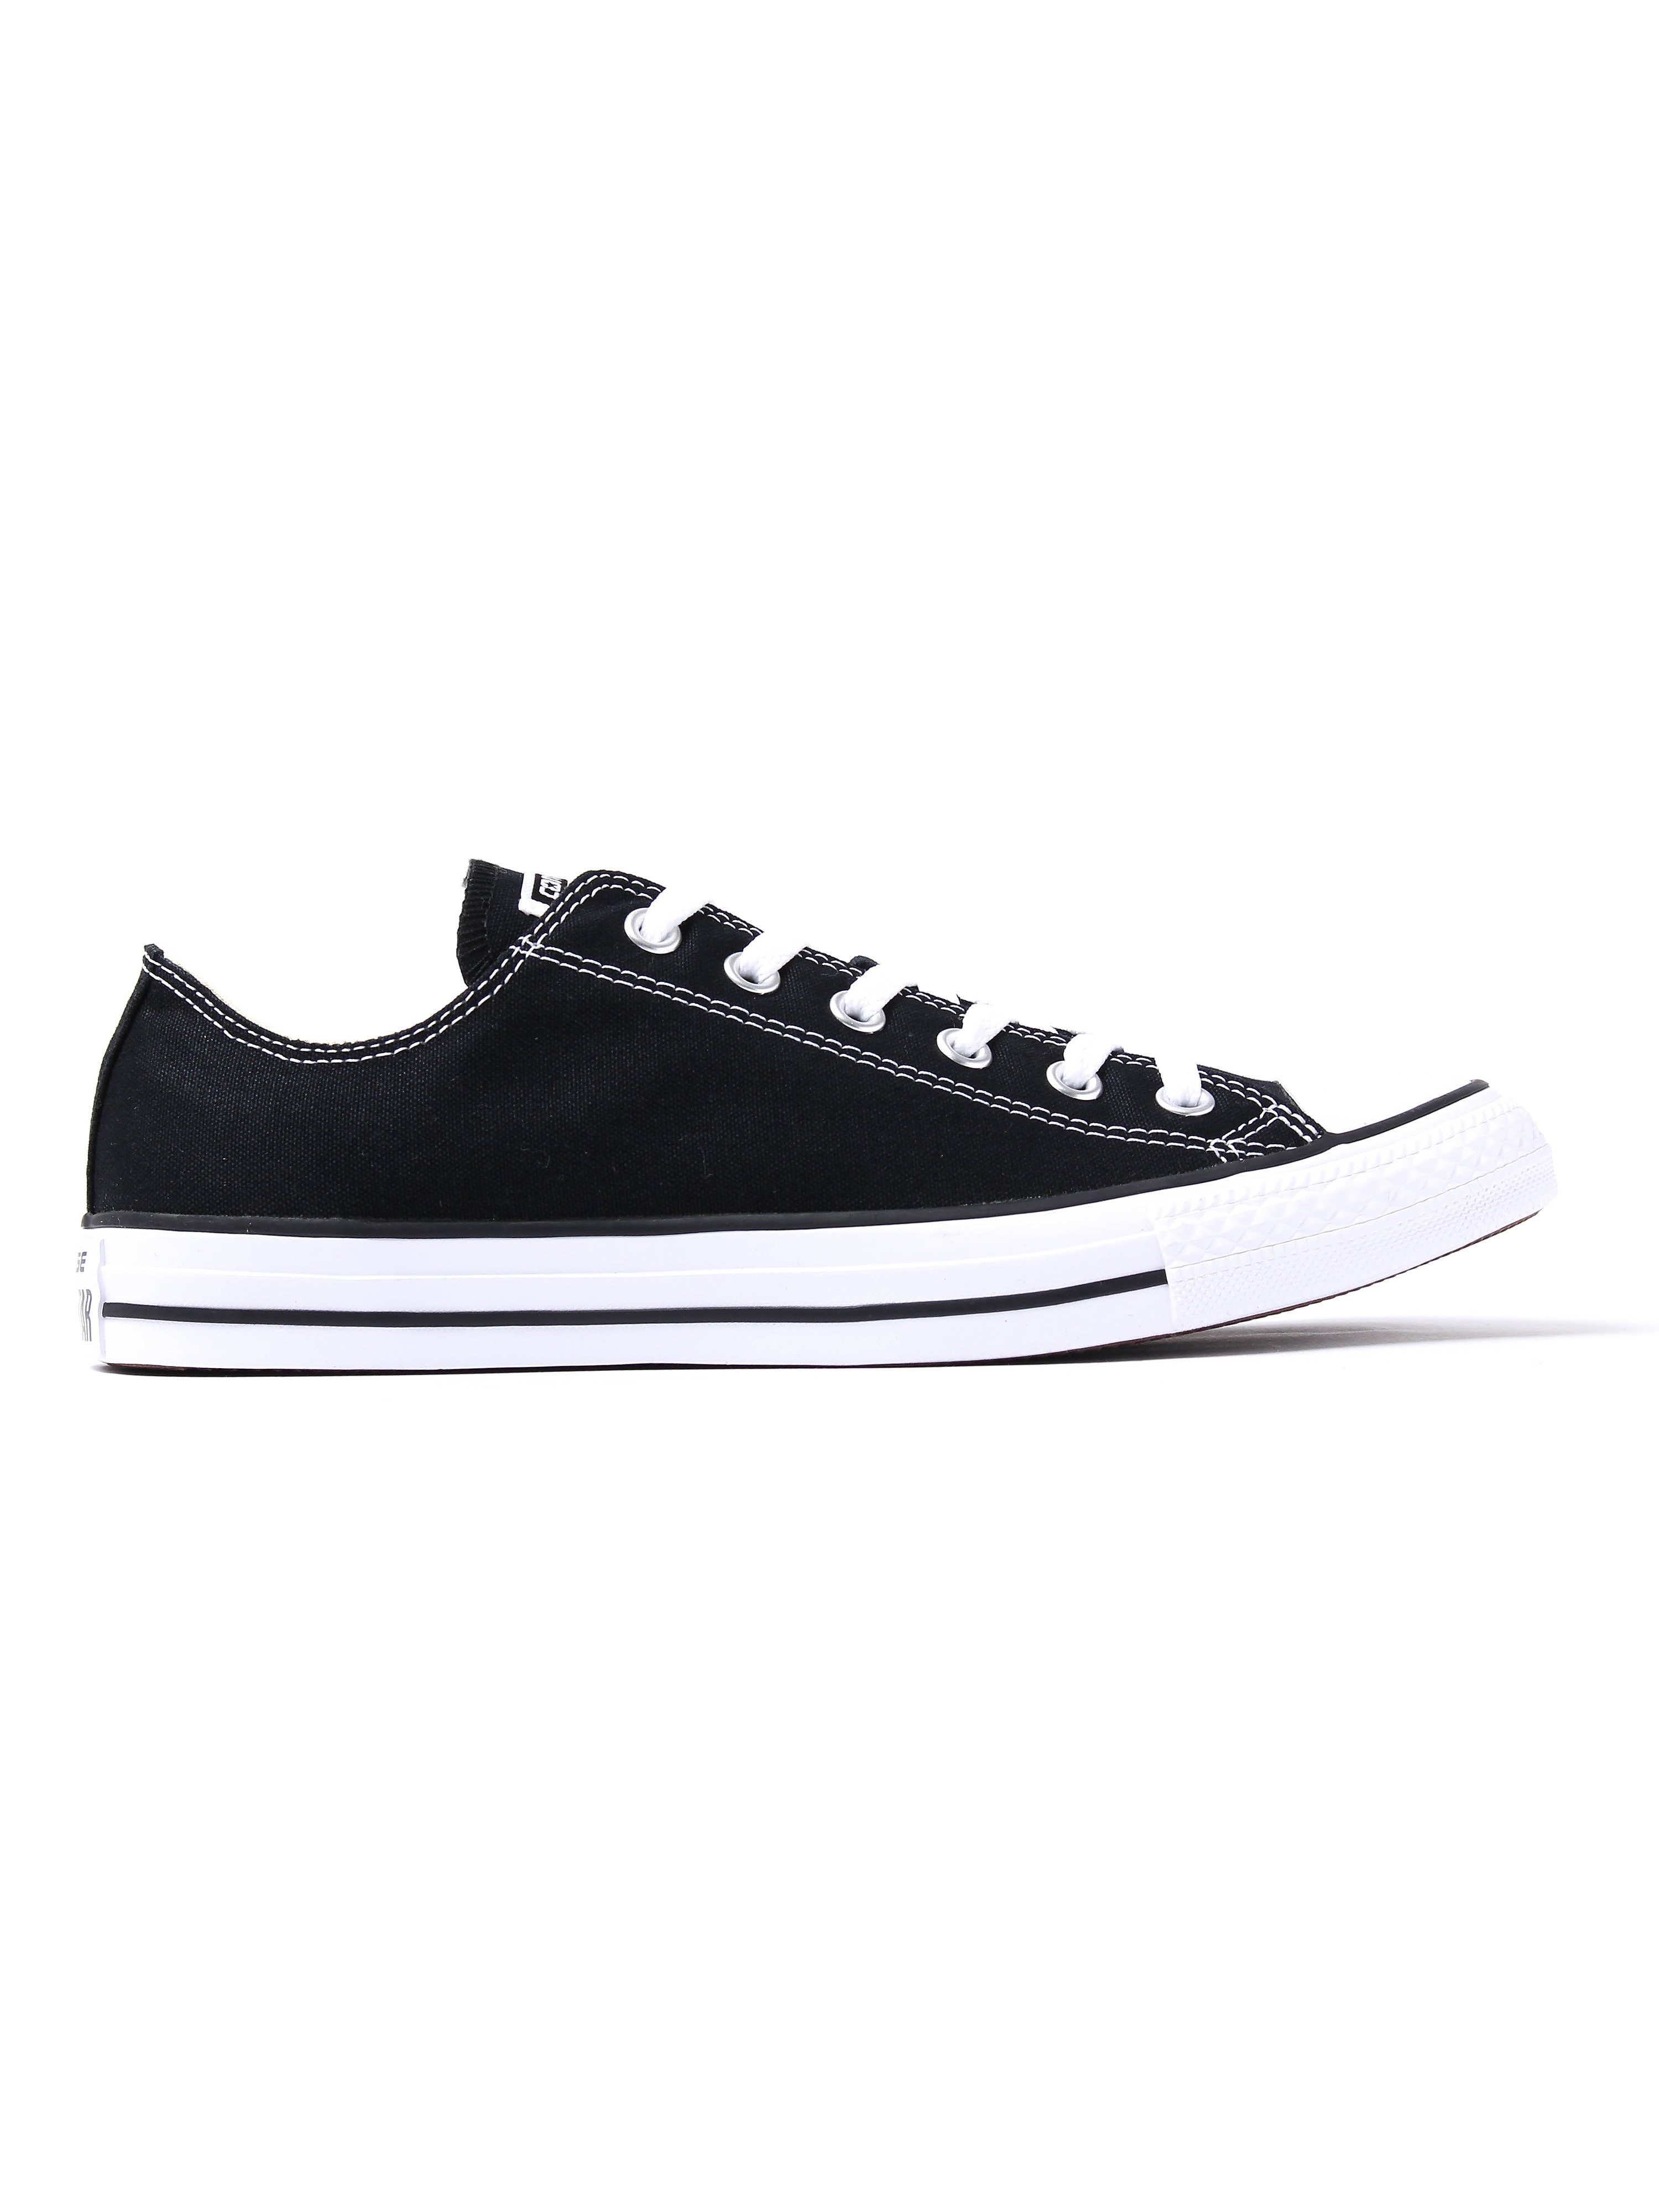 Converse Men's Chuck Taylor All Star OX Trainers - Black